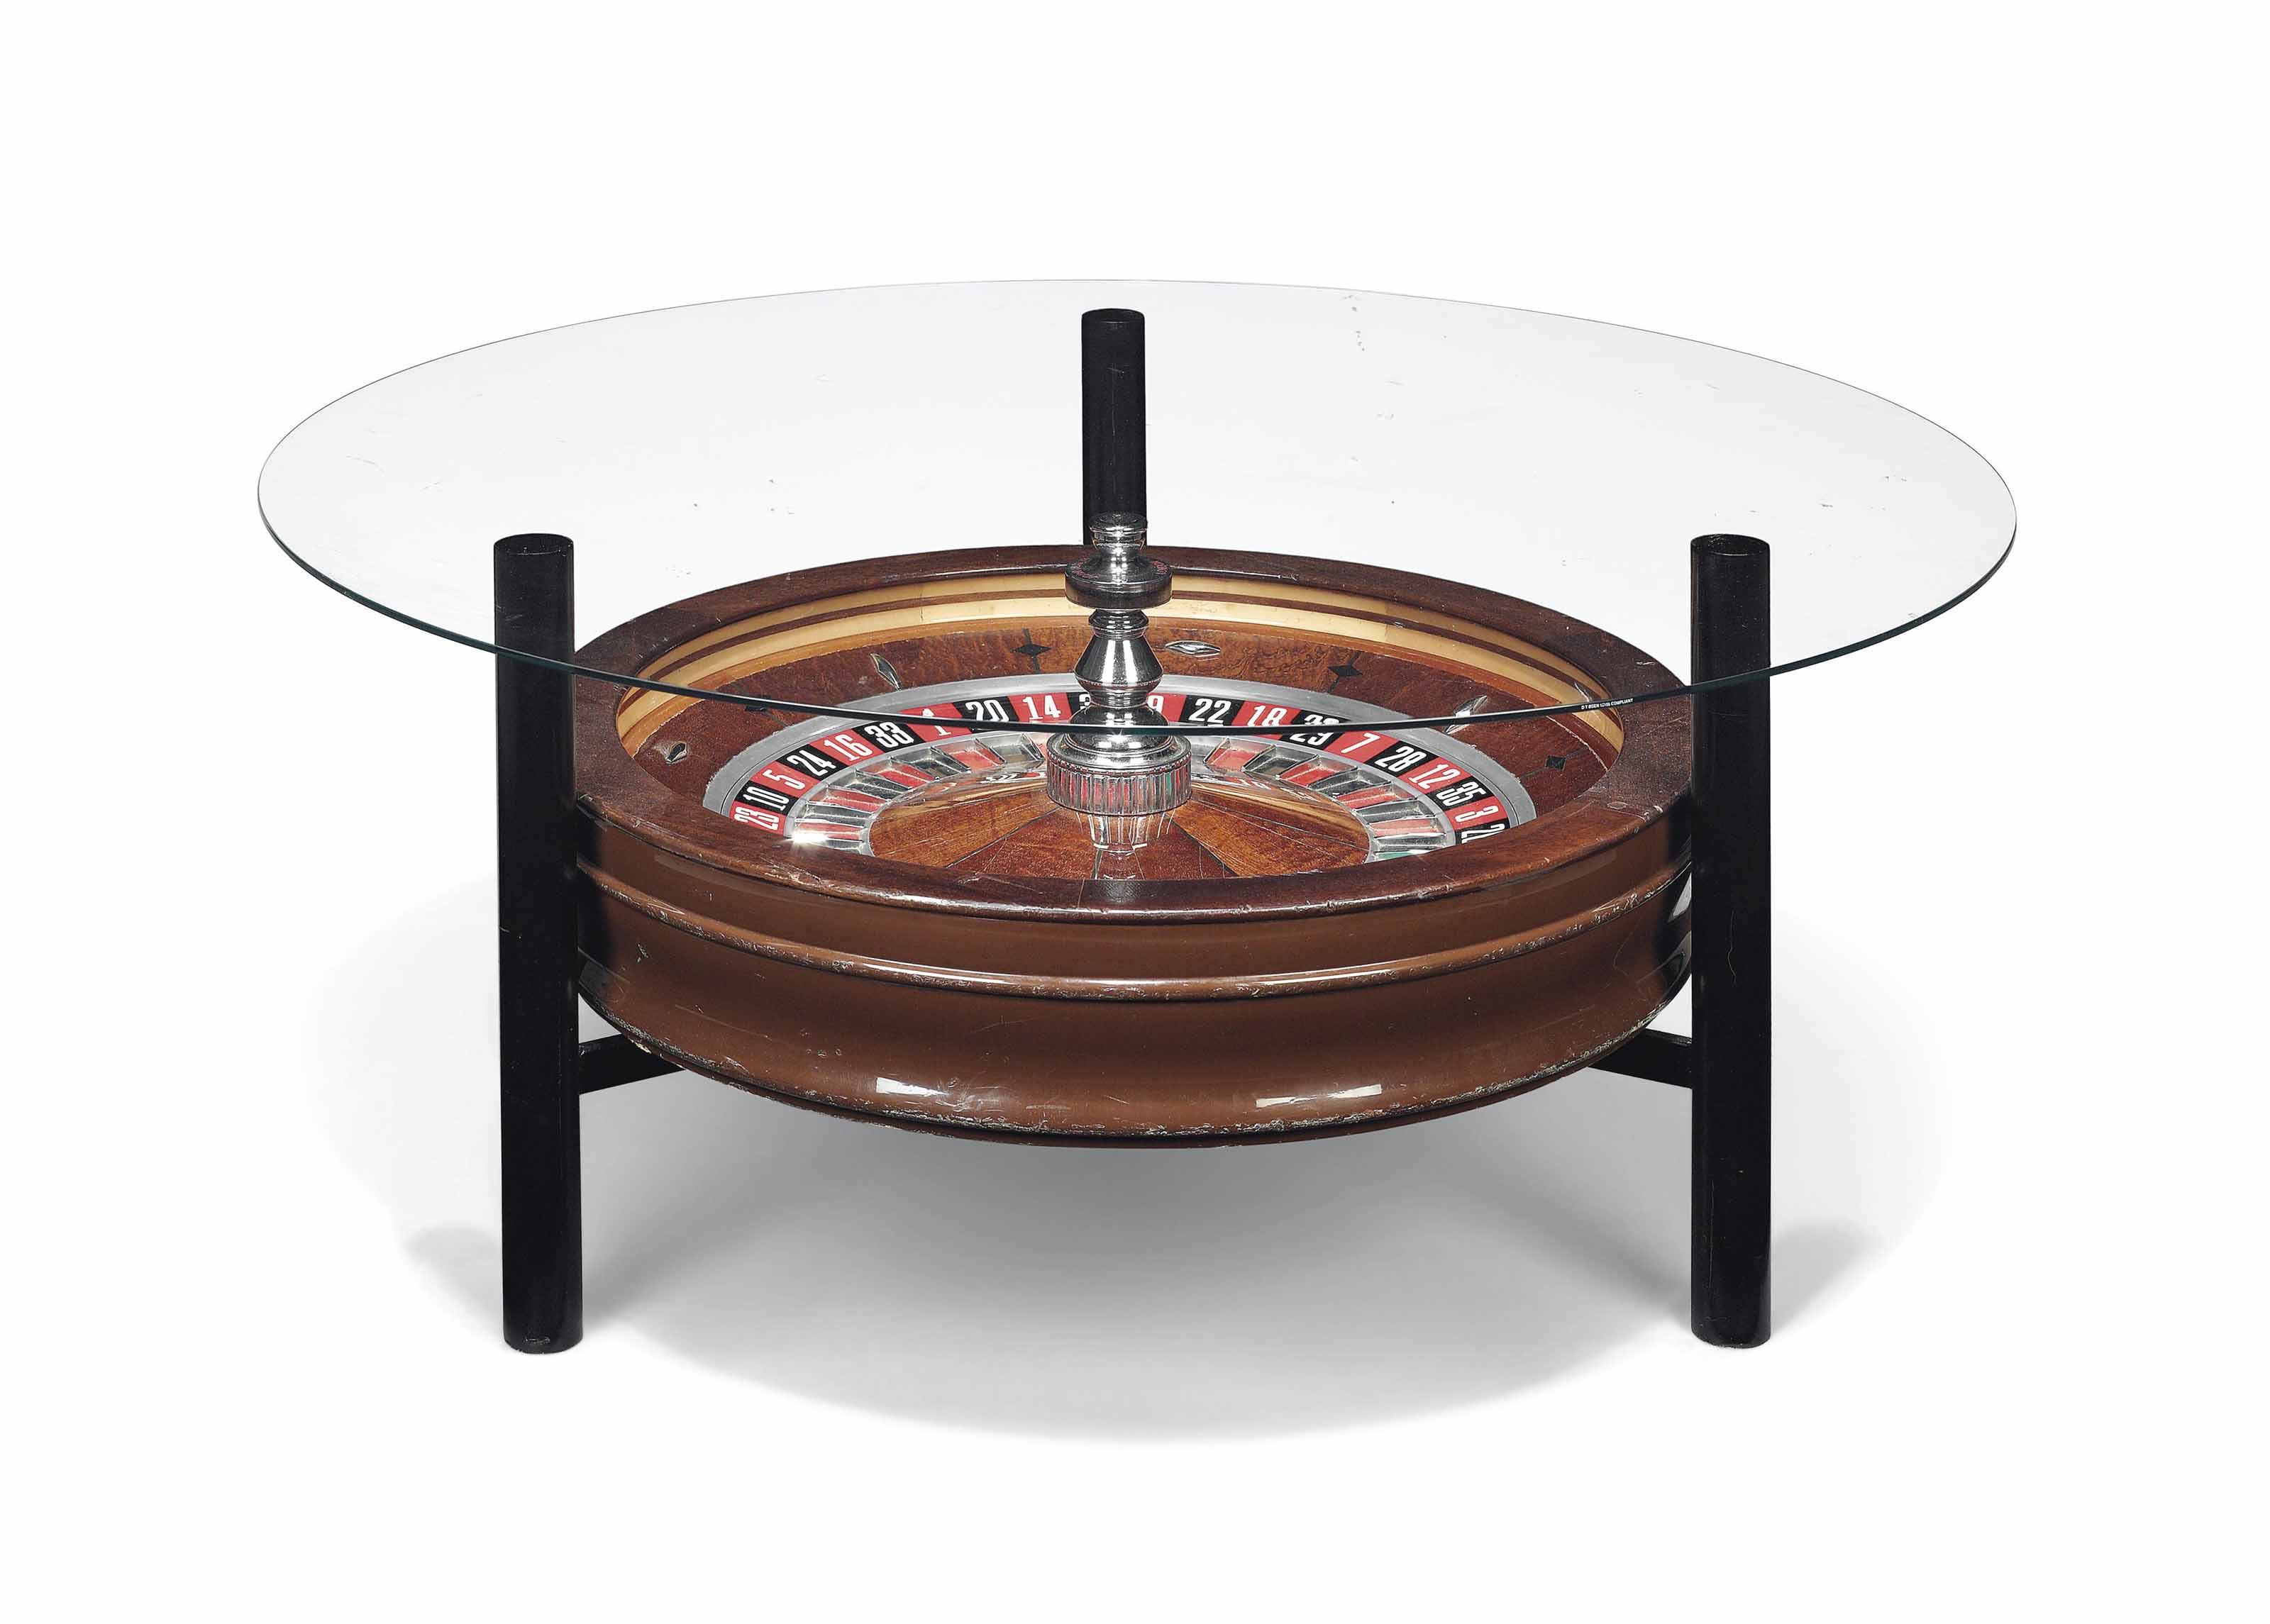 A NOVELTY ROULETTE WHEEL COFFEE TABLE SECOND HALF 20TH CENTURY